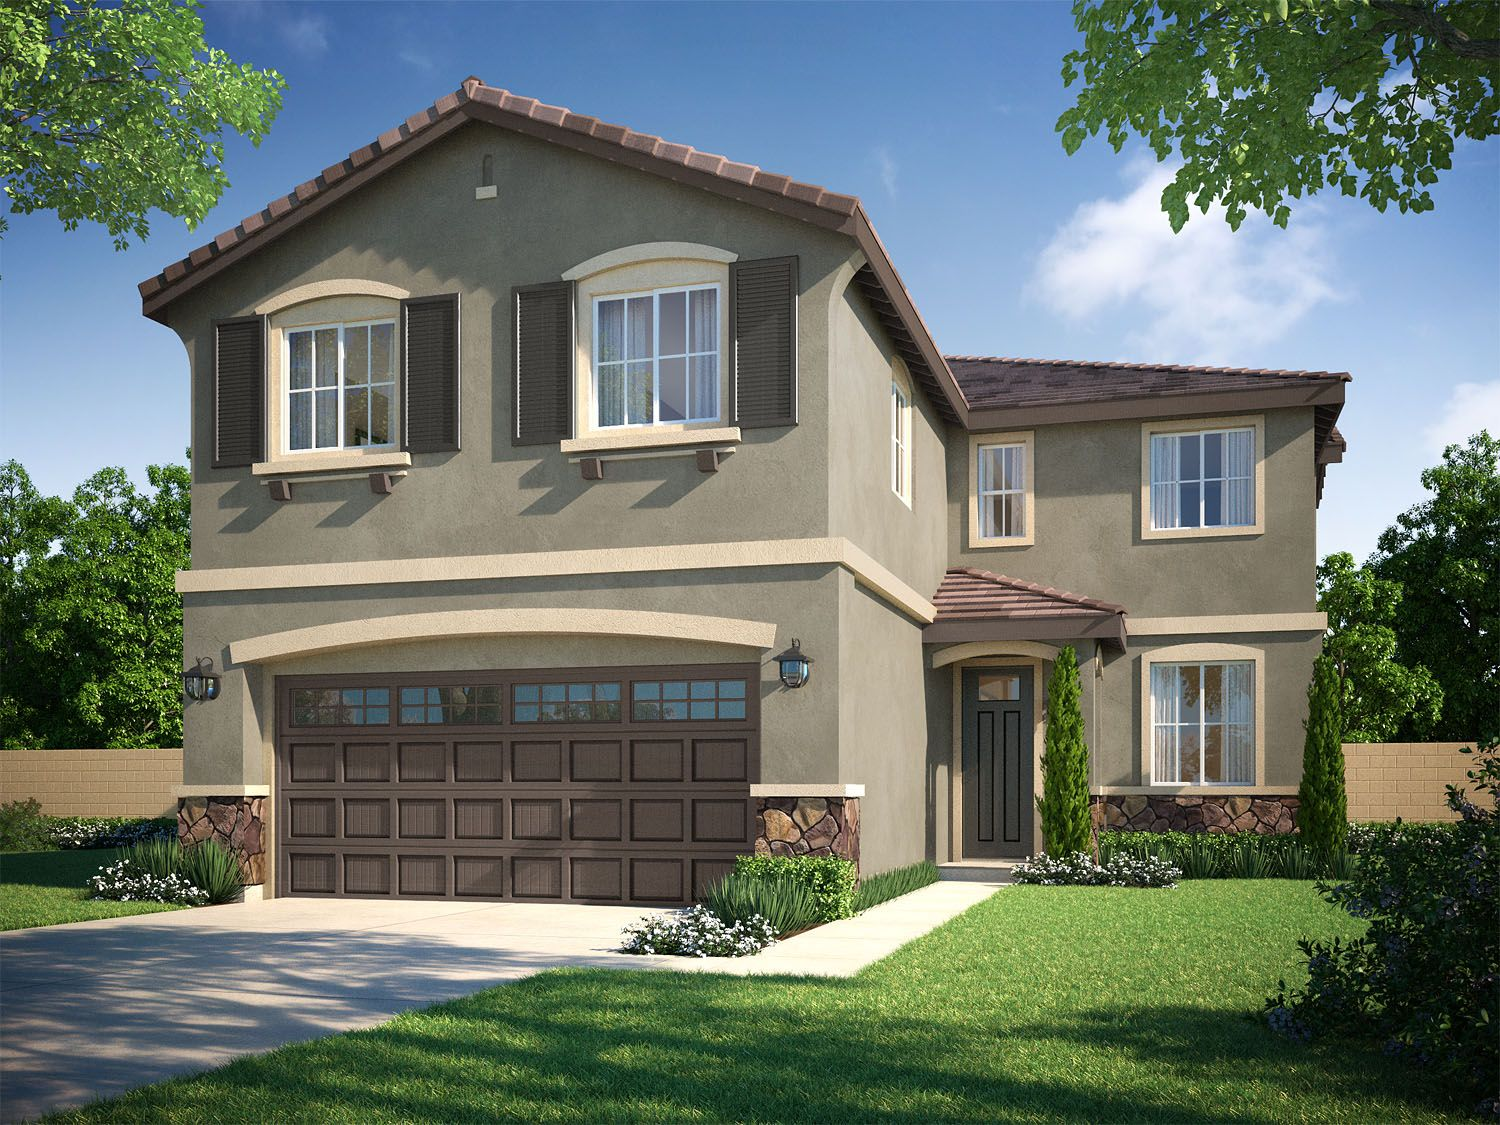 Single Family for Sale at Citrus Grove - Residence 3 17081 Cerritos Street Fontana, California 92335 United States